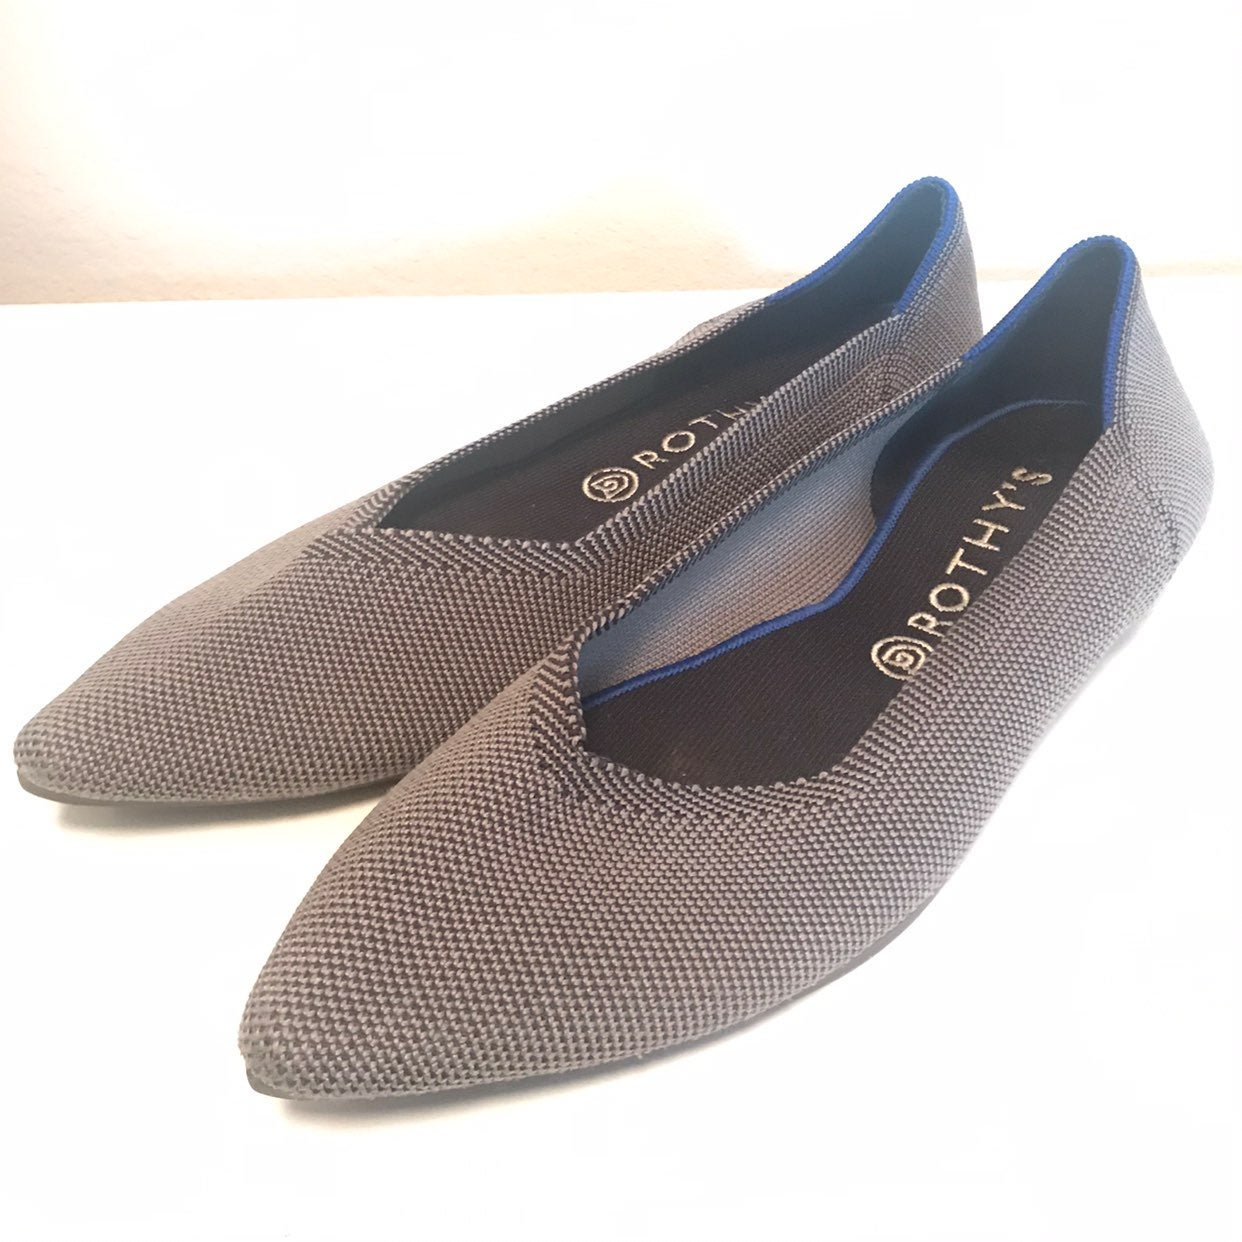 Rothy's Point Grey Flats Size 11